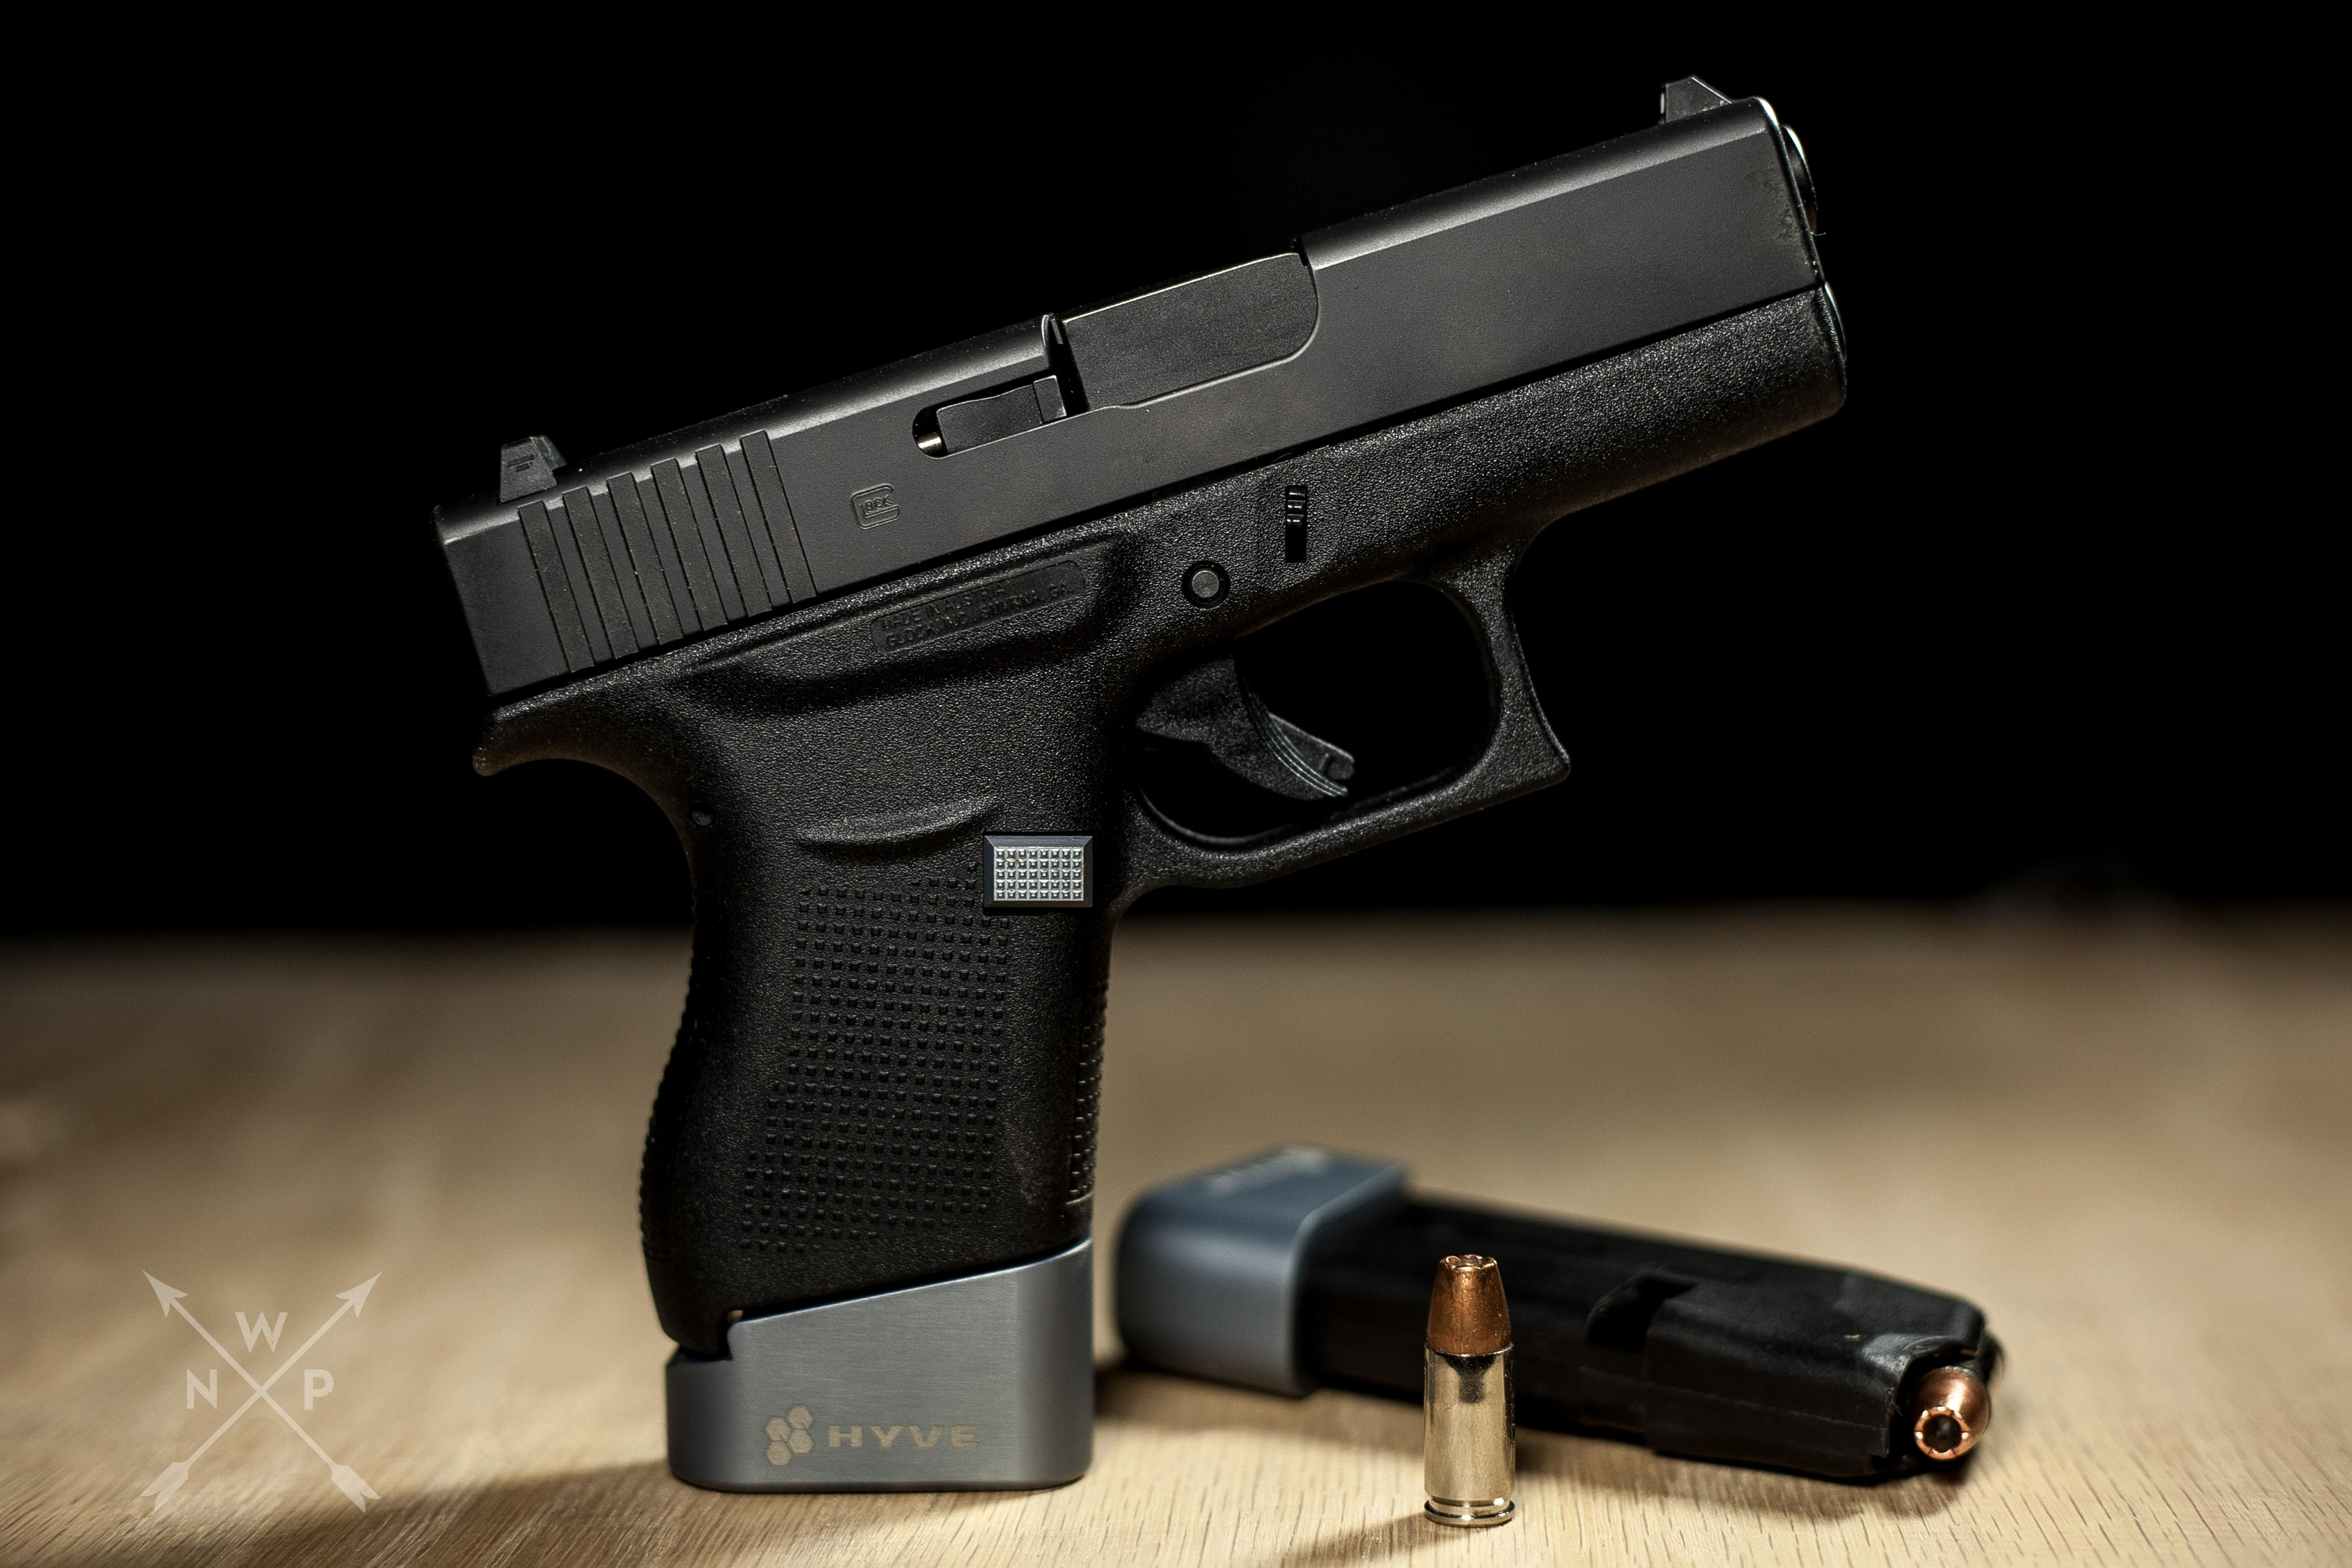 Glock 43 w- Hyve Technologies +2 mag extension and extended mag